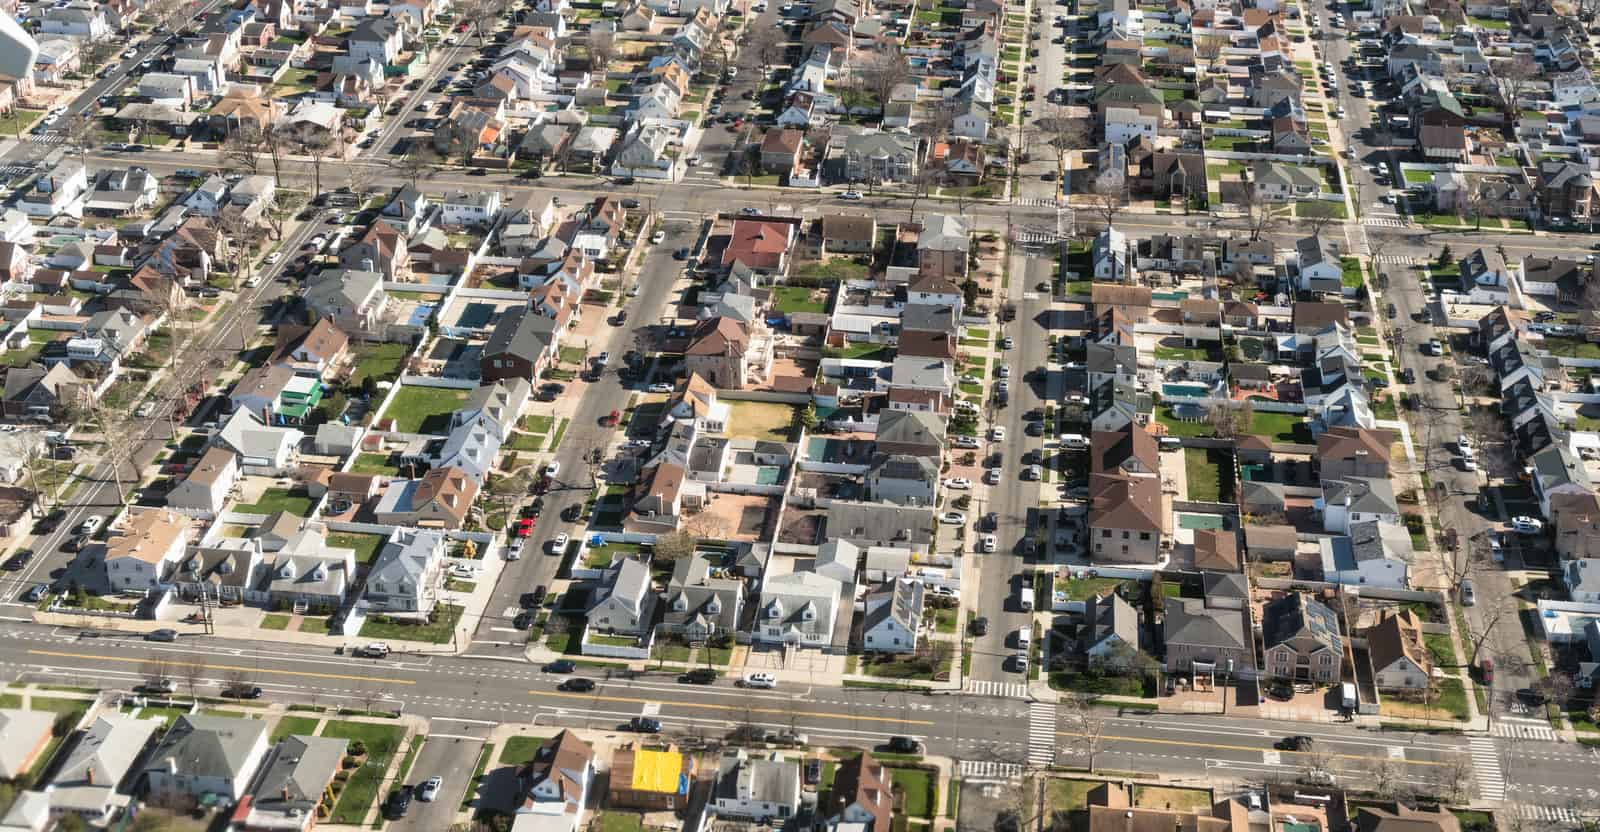 Aerial View of New York City suburbs